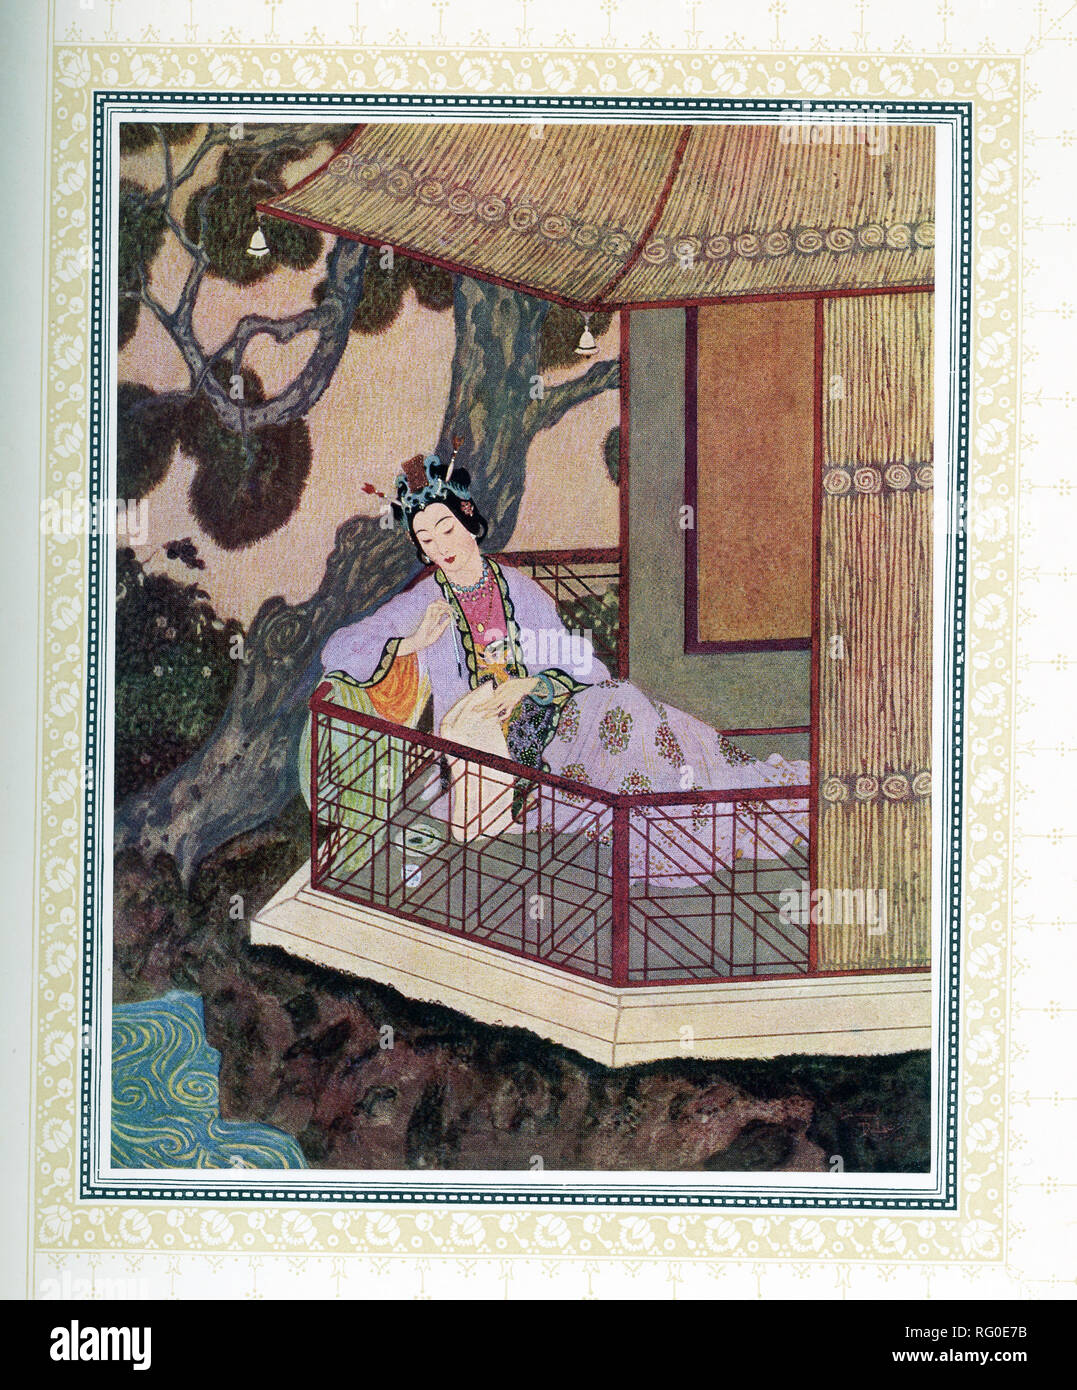 This illustration is taken from the book 'Sinbad the Sailor' that was published around 1914.  It shows Lady Bedr-el-Budr. The illustrator was Edmund Dulac and the story is from the Arabian Nights. Aladdin fell in love with Lady Bedr-el-Buhr when he saw her. - Stock Image